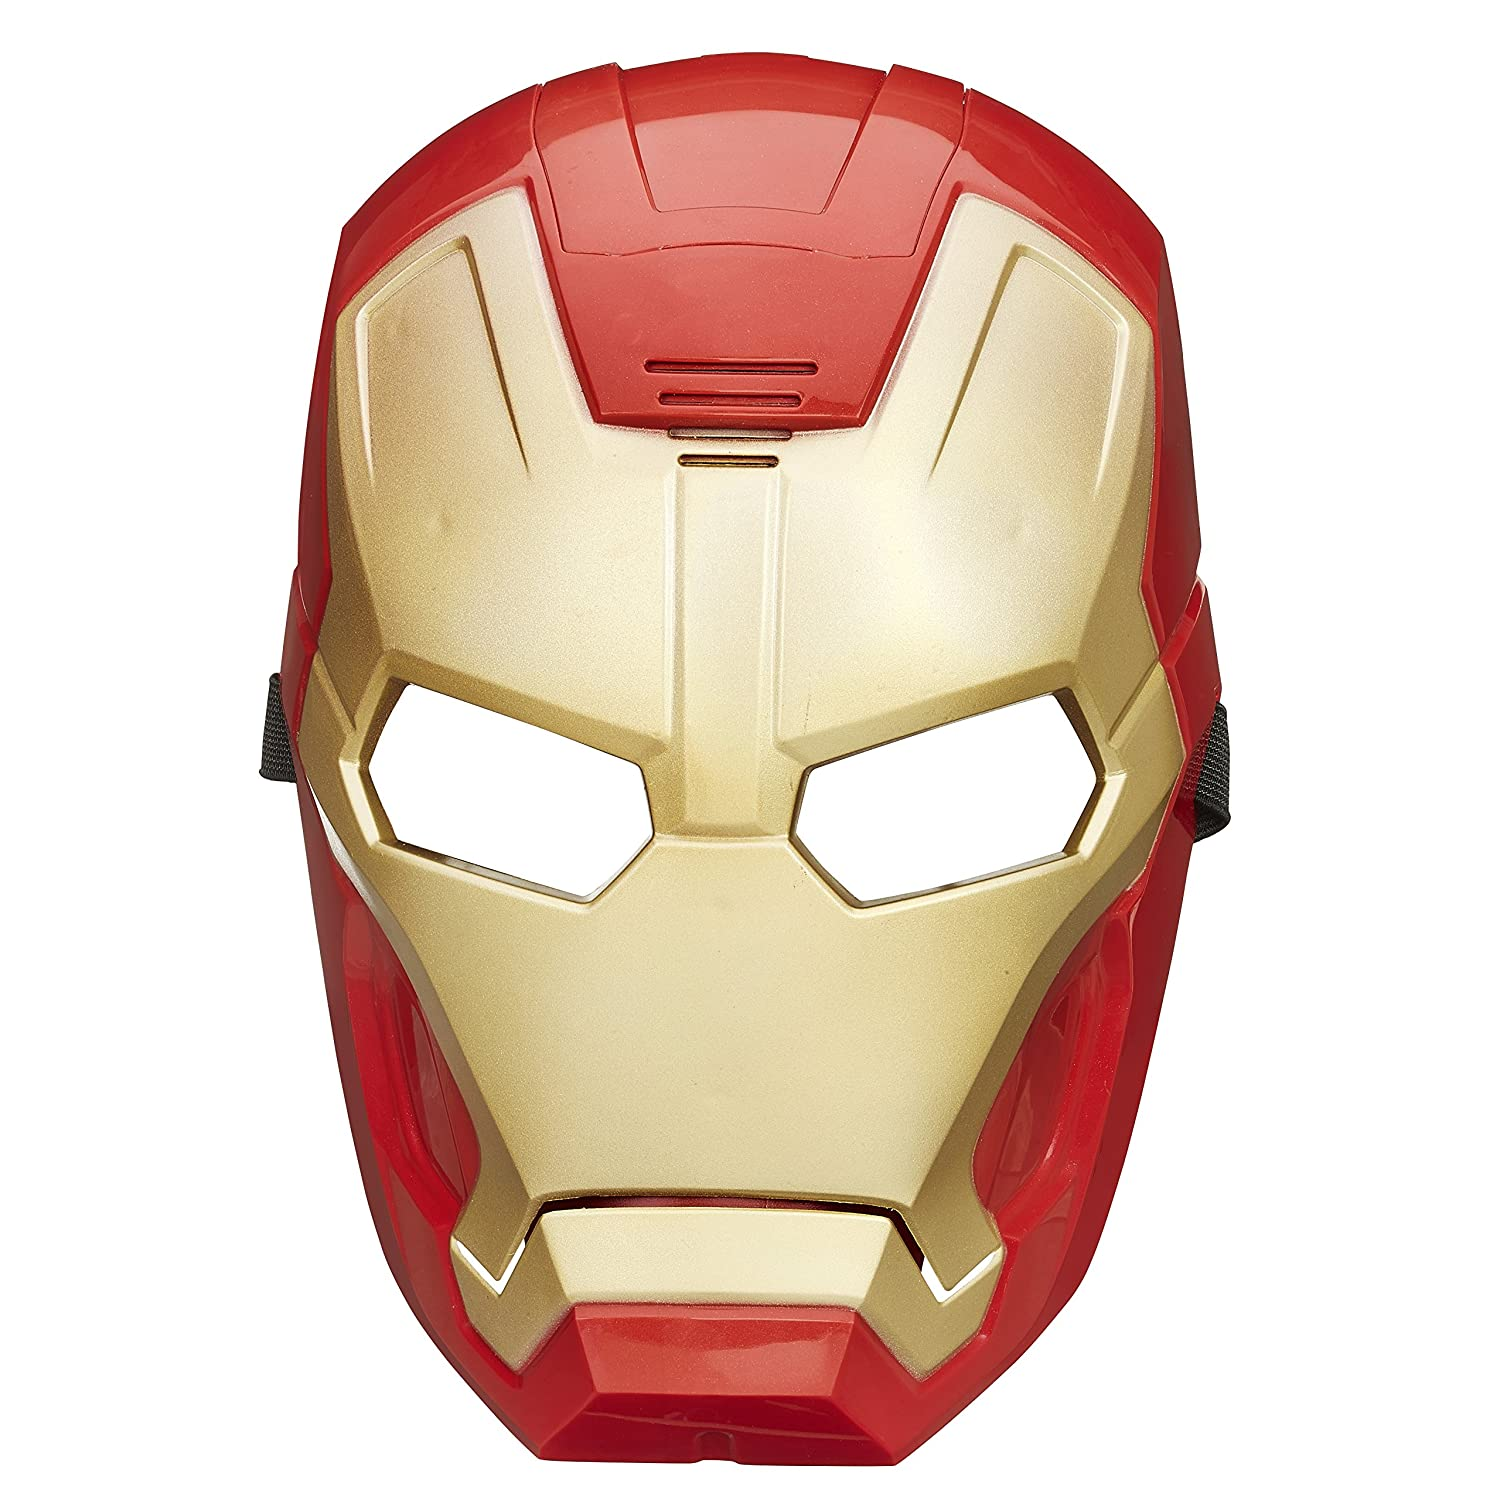 how to draw iron man 3 mask